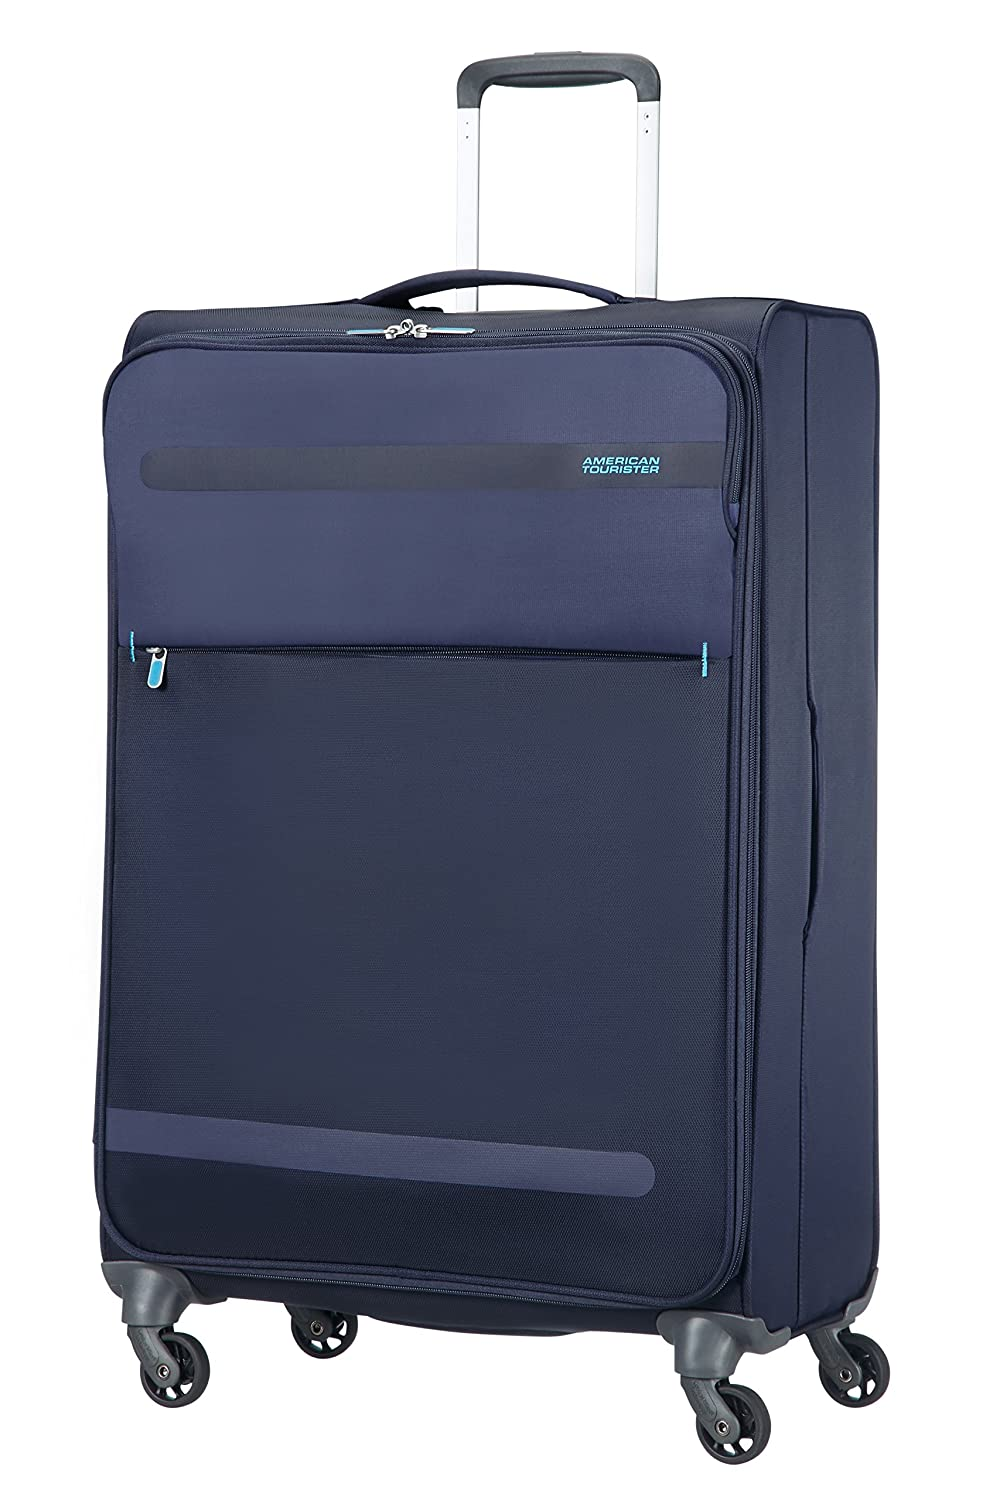 American Tourister Herolite Super Light Spinner Maleta cm Litros Color Azul Medianoche